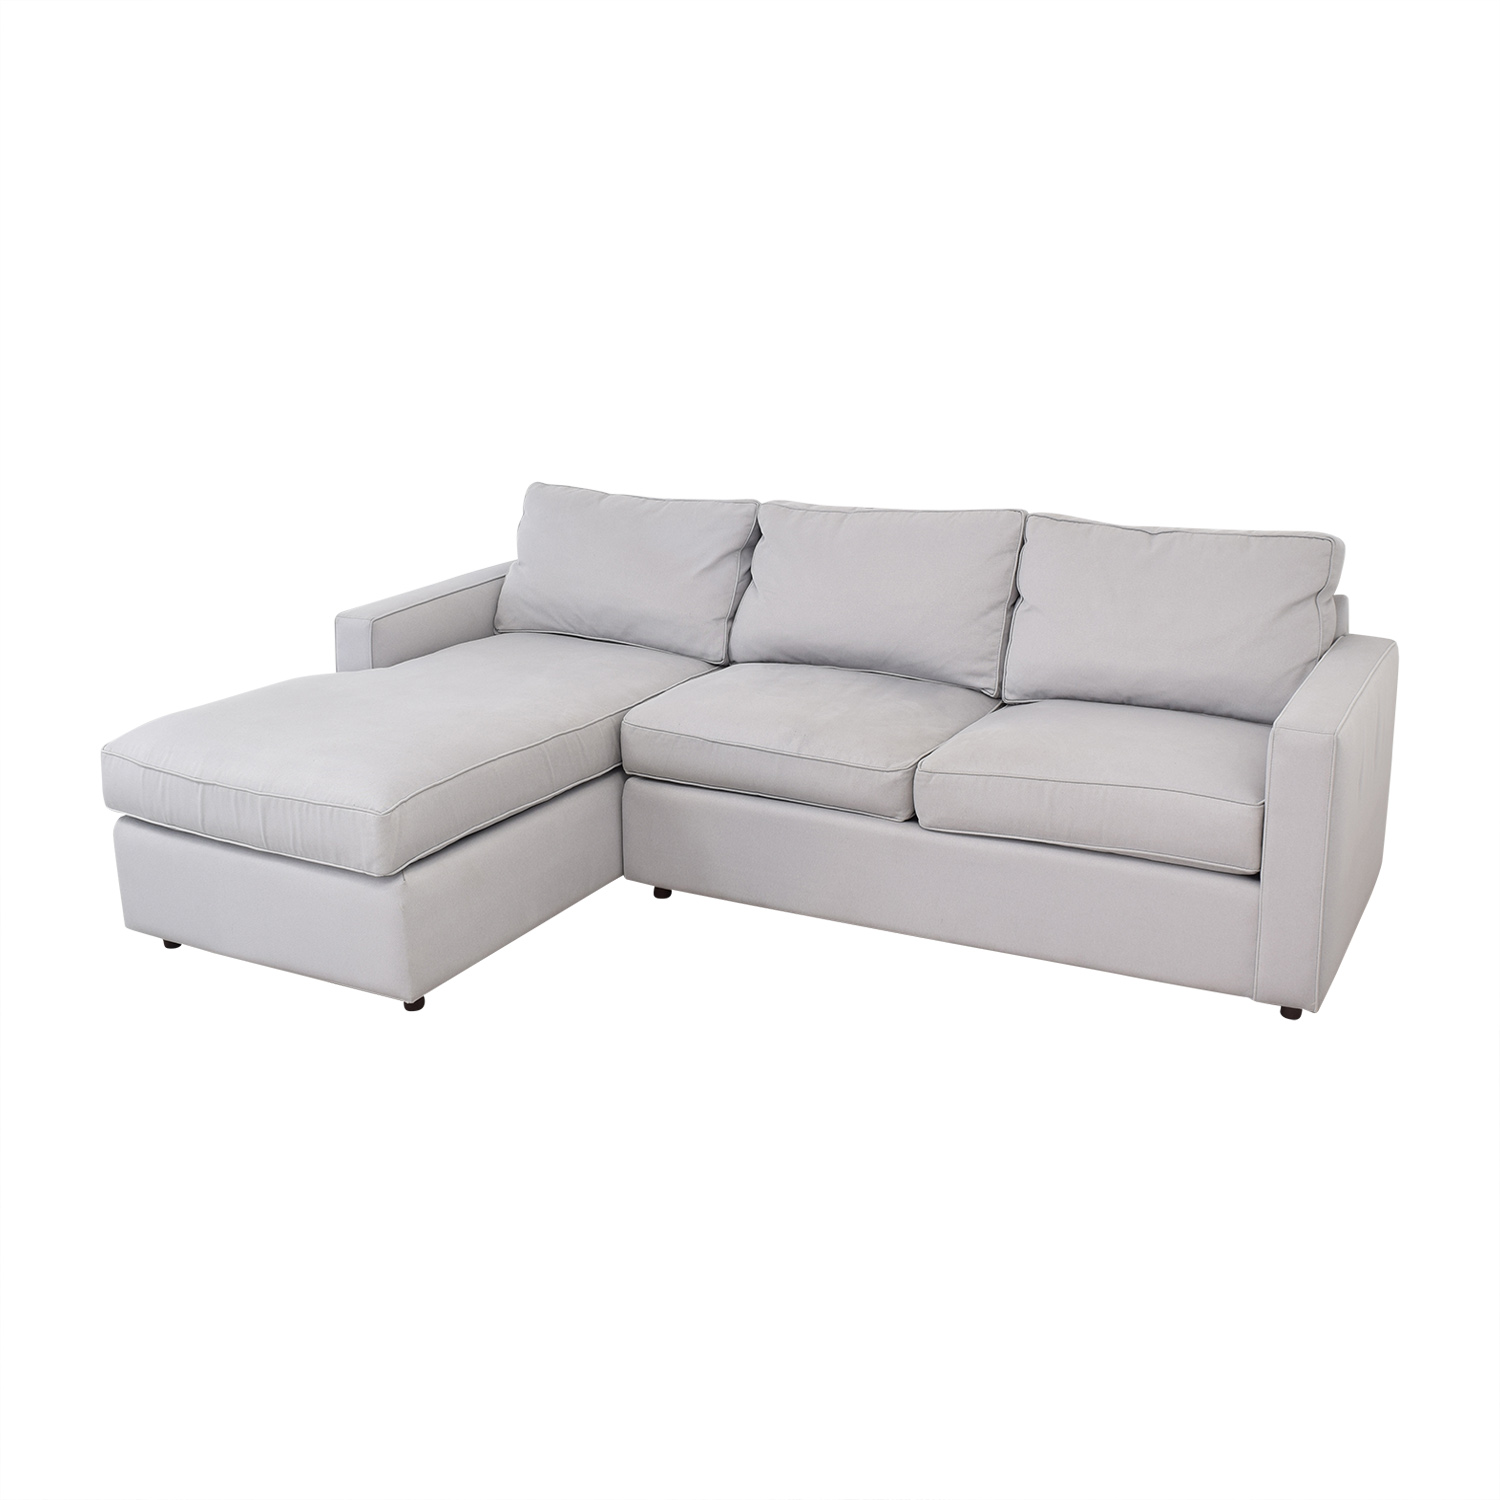 Room & Board Sofa with Chaise Room & Board